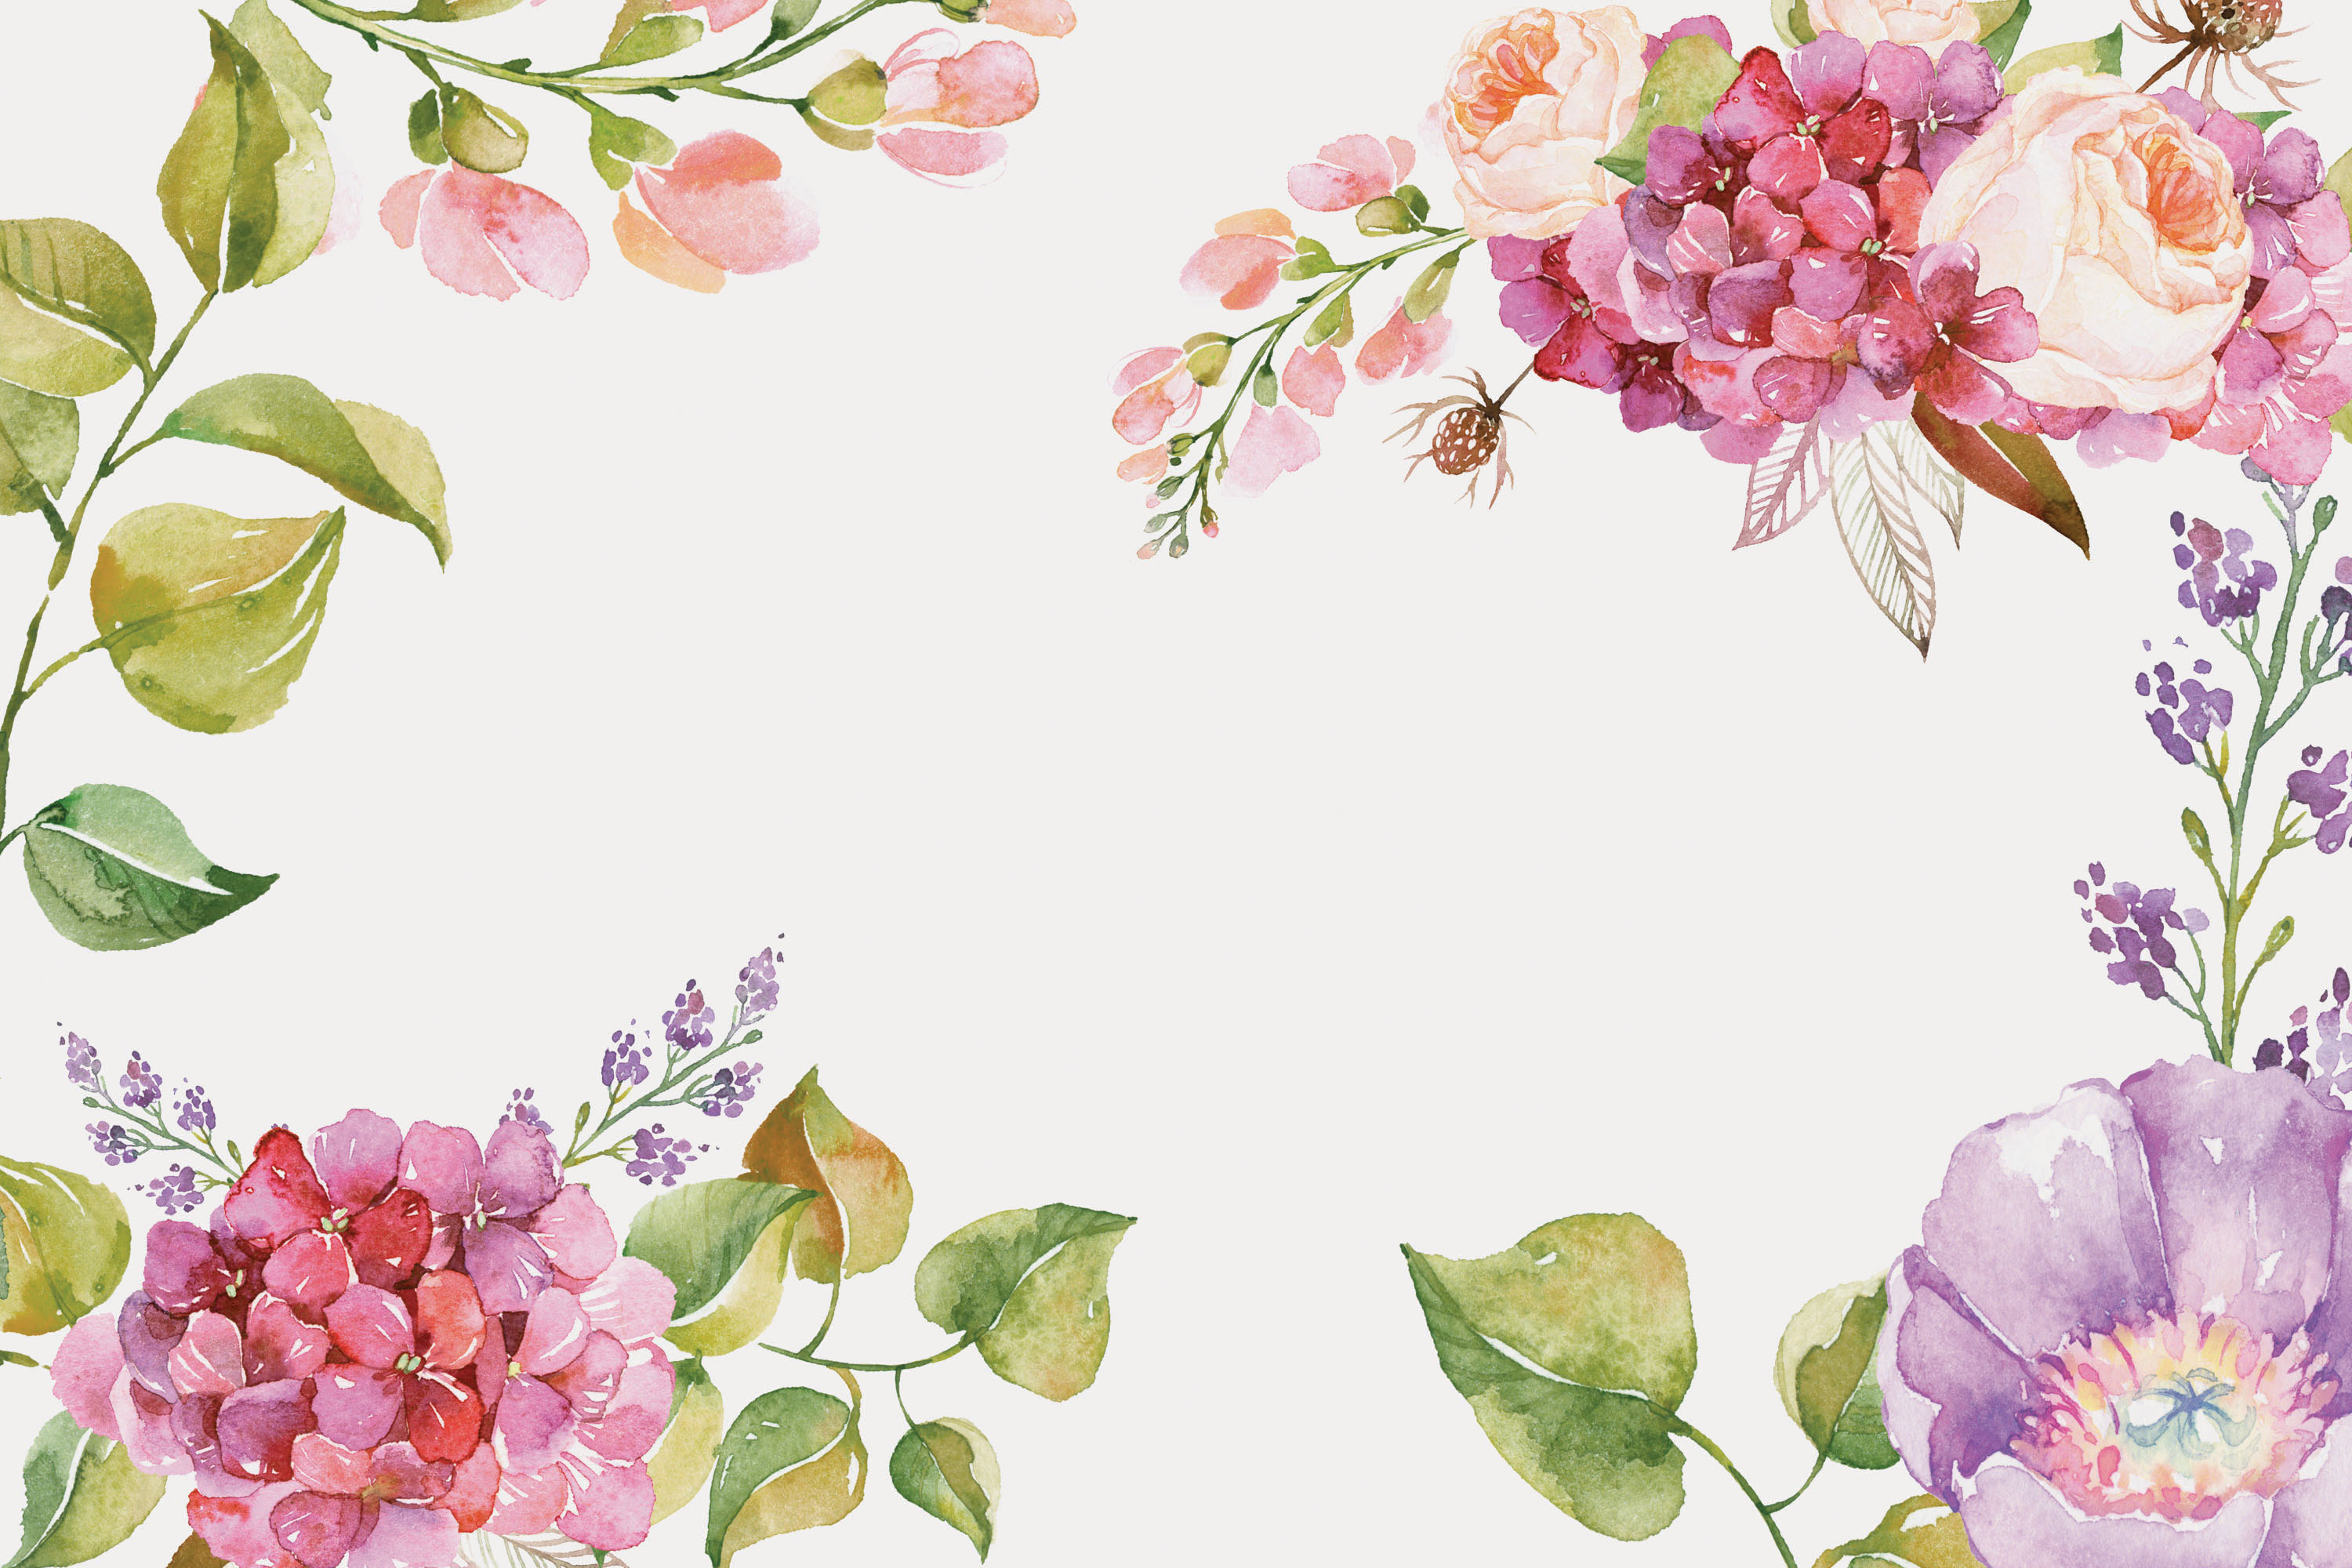 posters floral watercolor background  watercolor  flowers  poster background image for free download